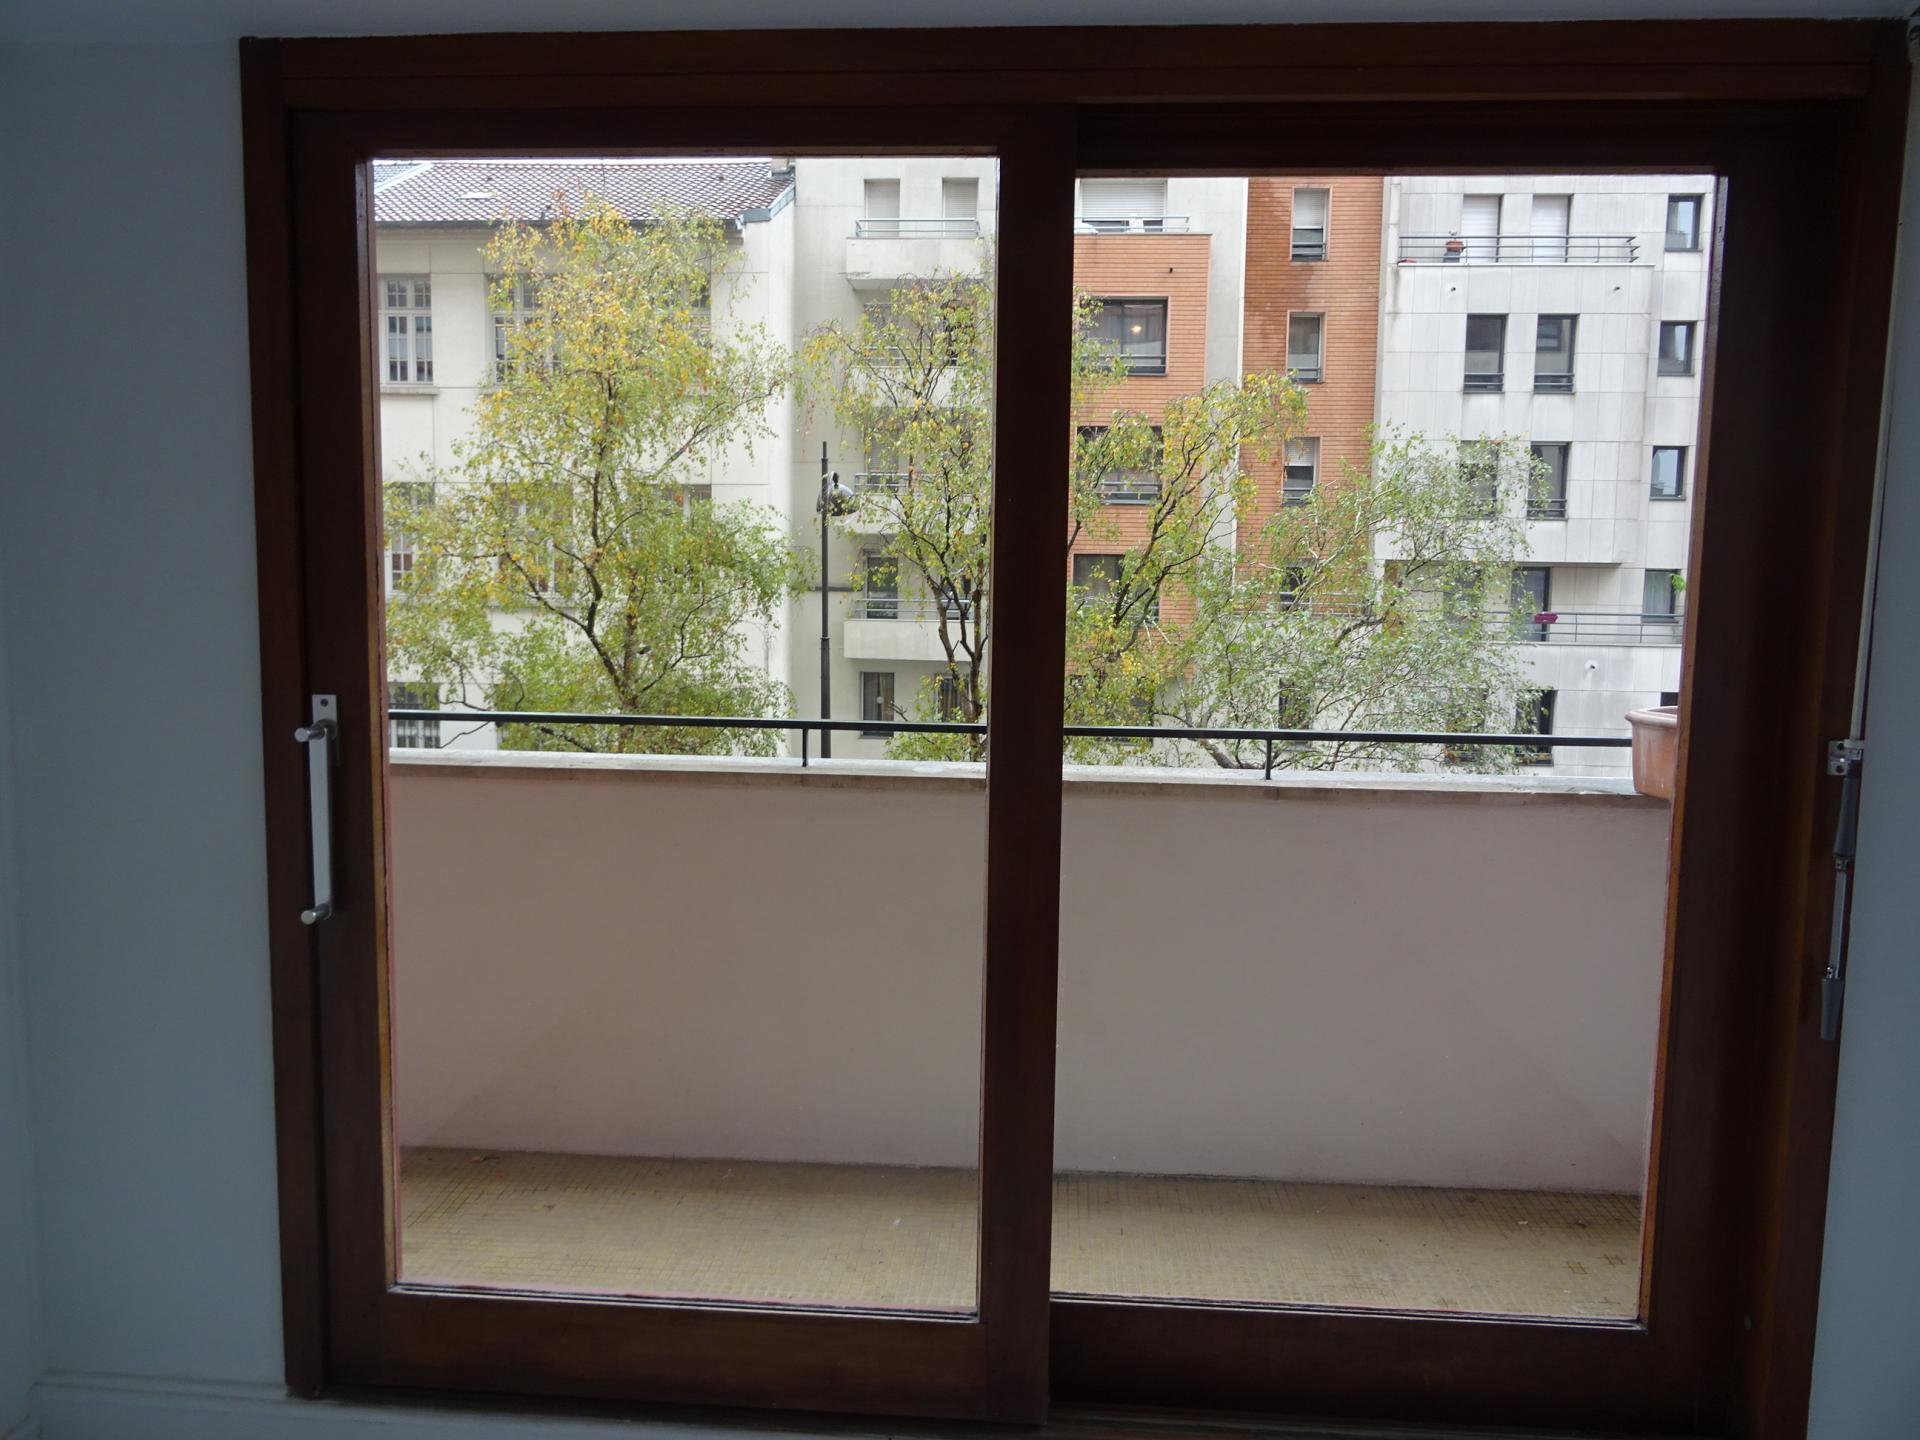 Appartment 4 rooms balcony parking space